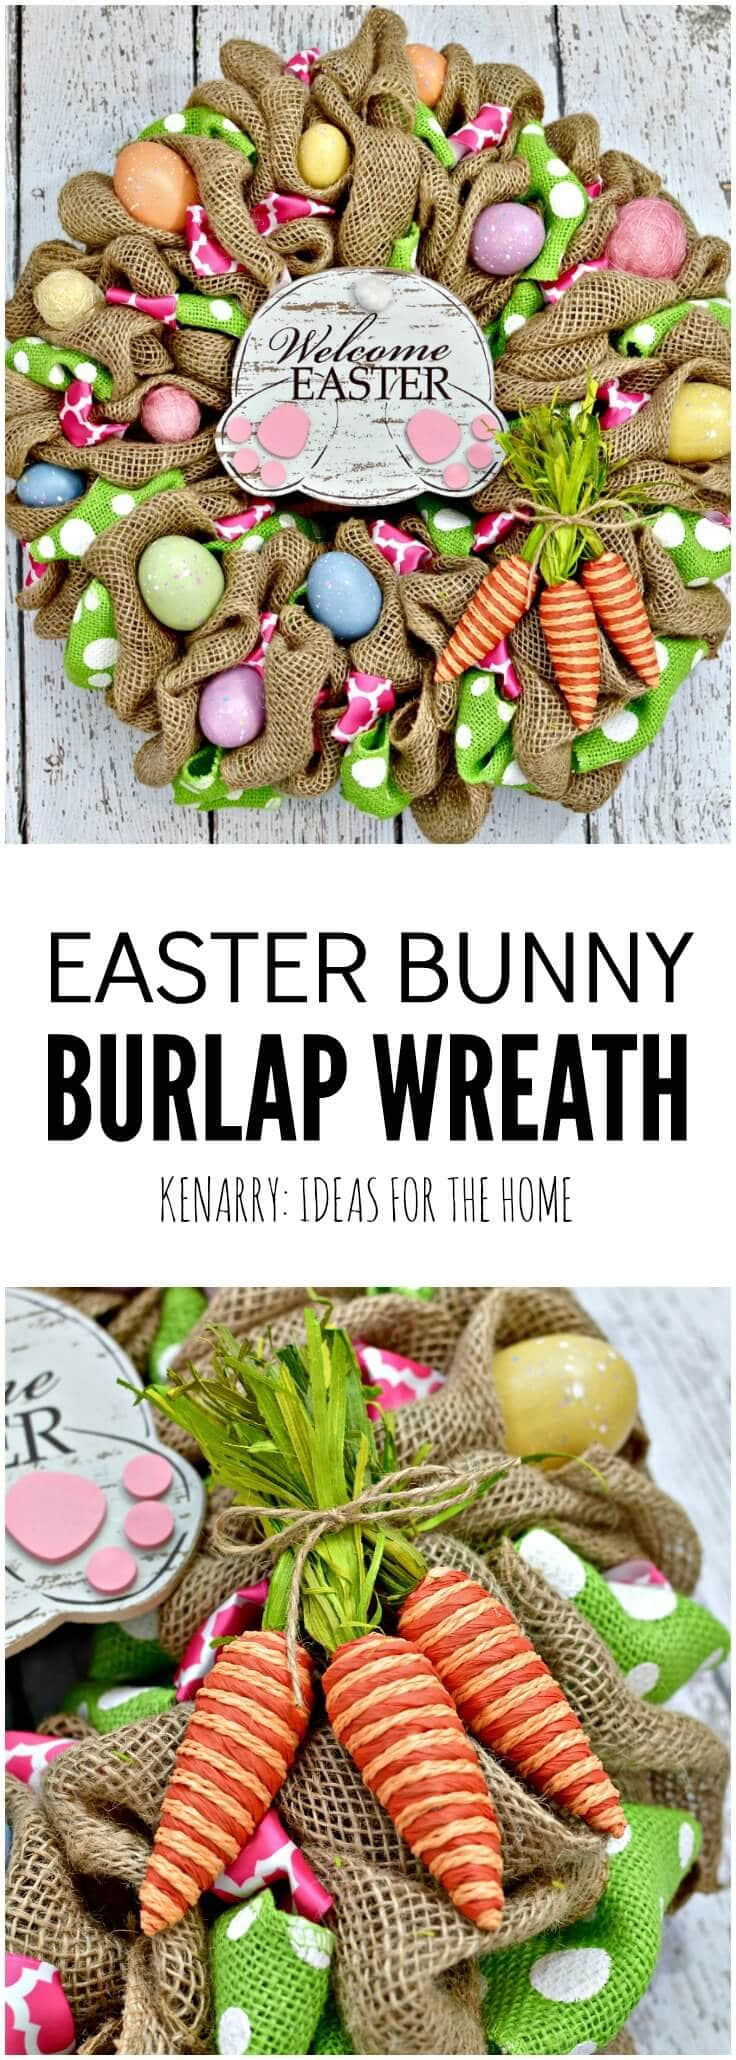 Easter bunny burlap wreath an easy craft idea and tutorial this easter bunny burlap wreath is so cute i especially love the bunny butt negle Image collections